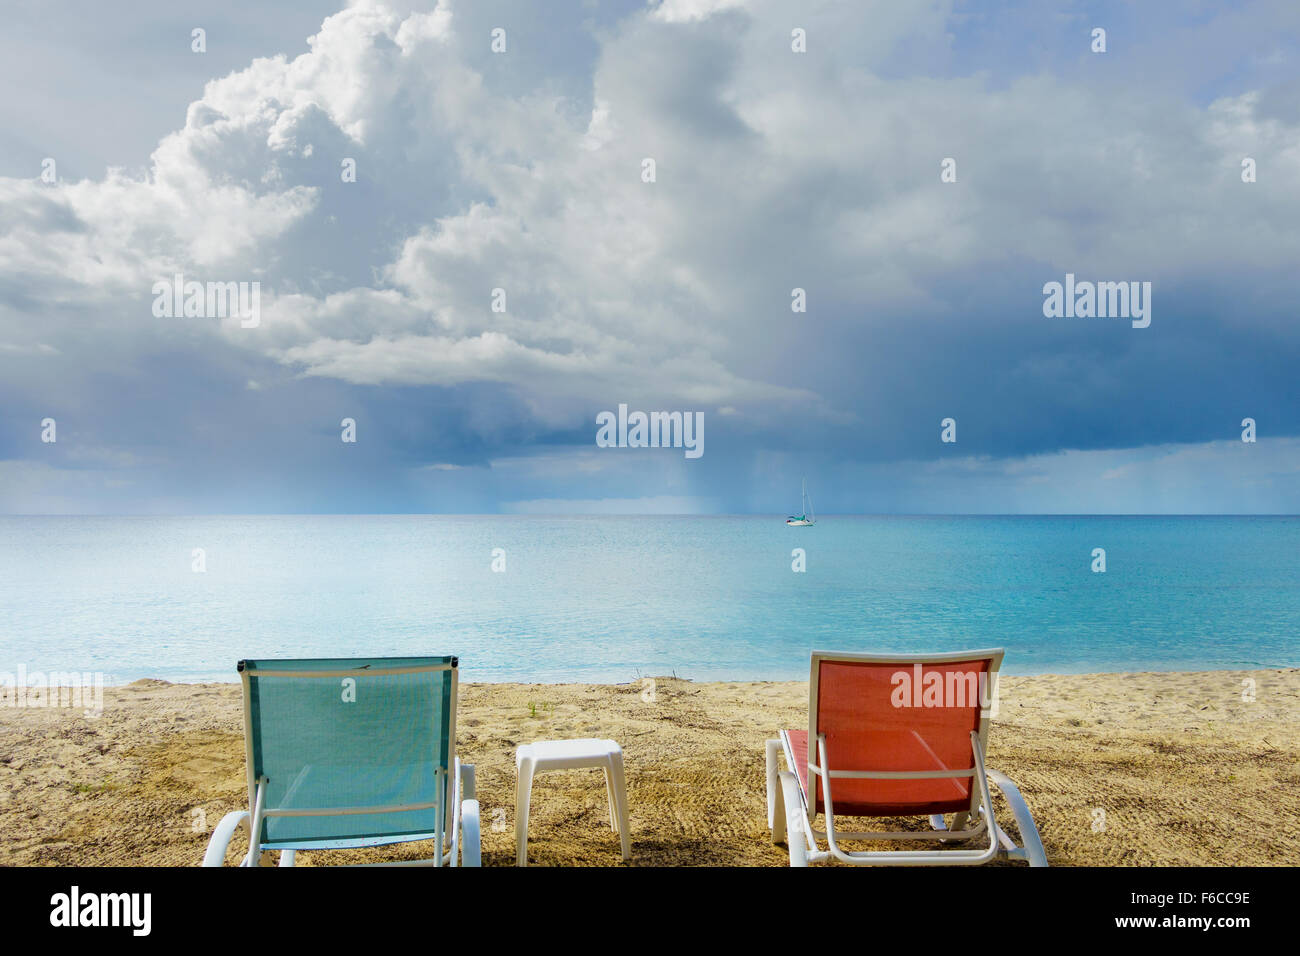 Two empty beach chairs look out on a tropical storm over the Caribbean sea in St. Croix, U.S. Virgin Islands. Stock Photo